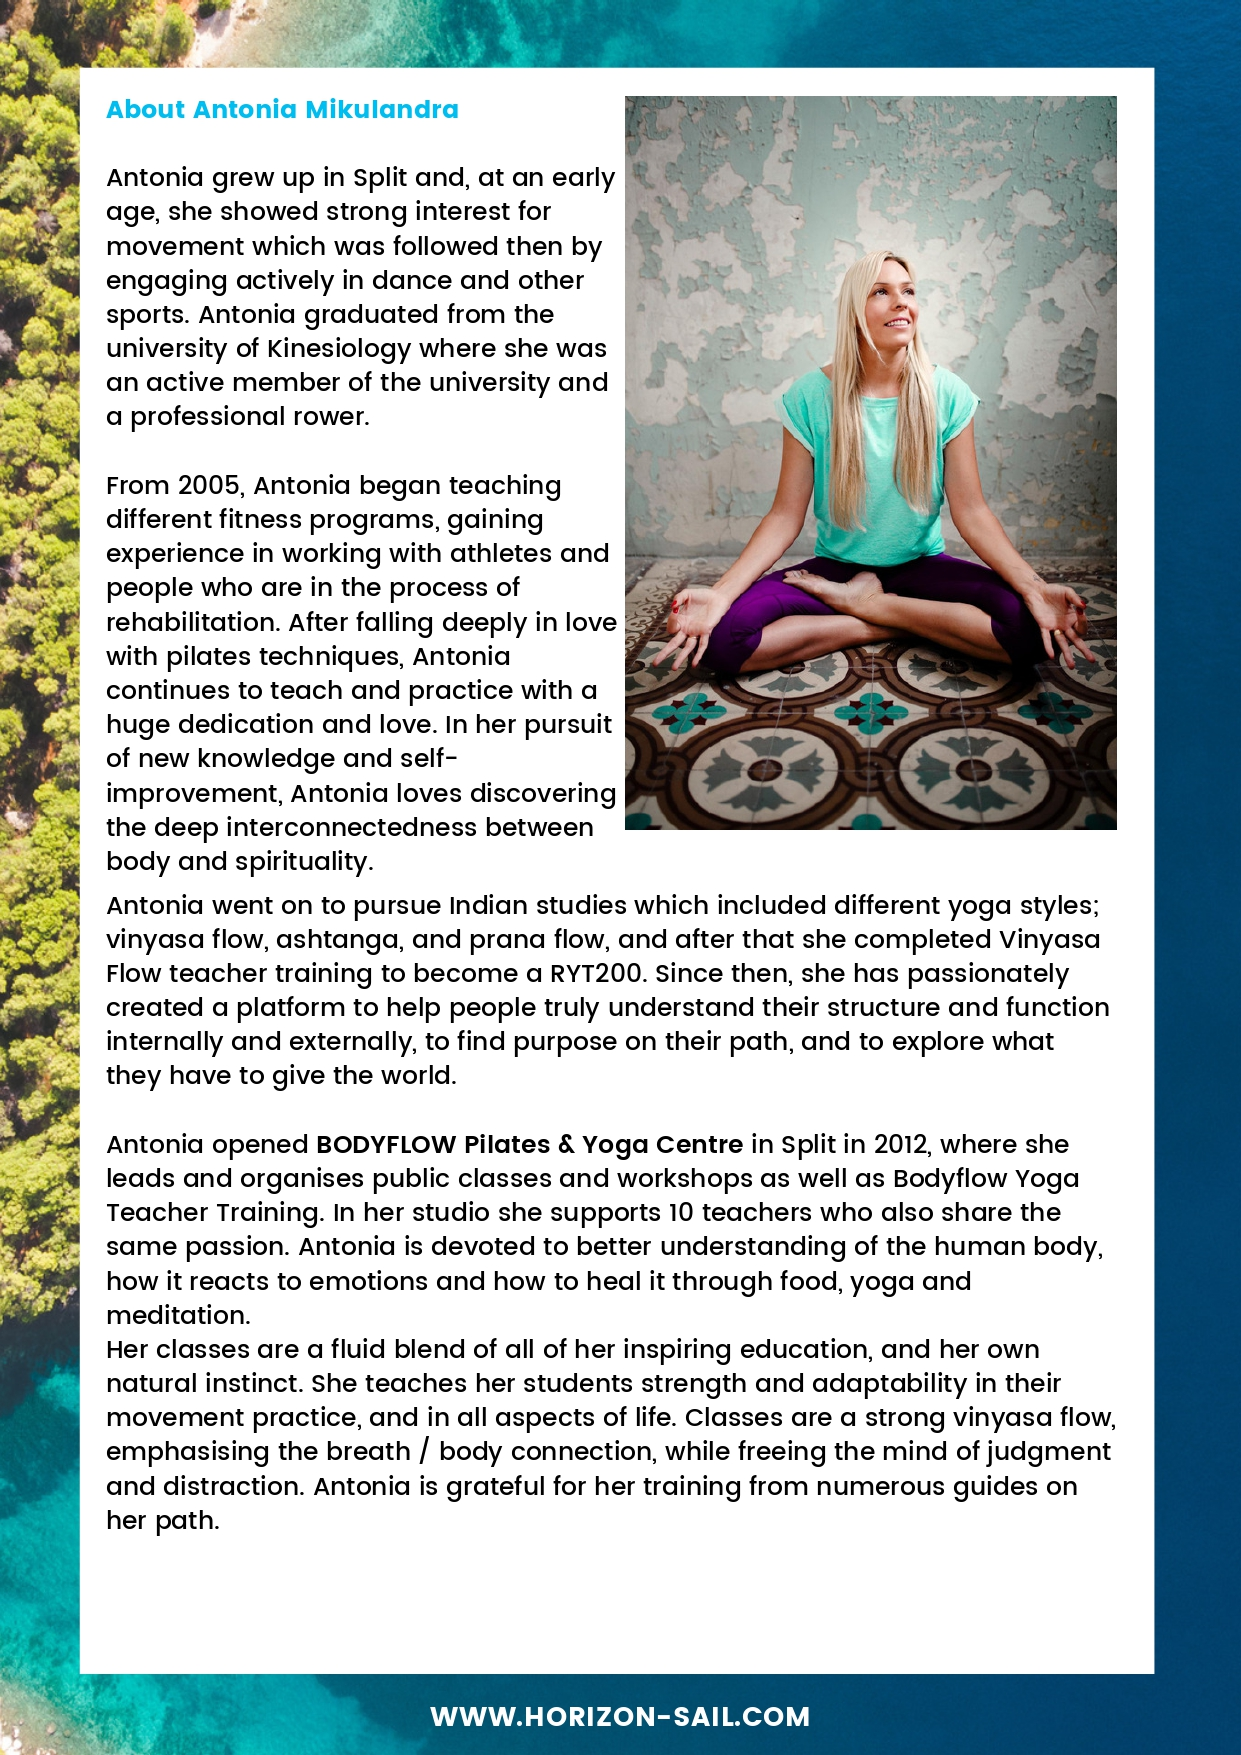 bodyflow-yoga-cruise-2019_pages-to-jpg-0004